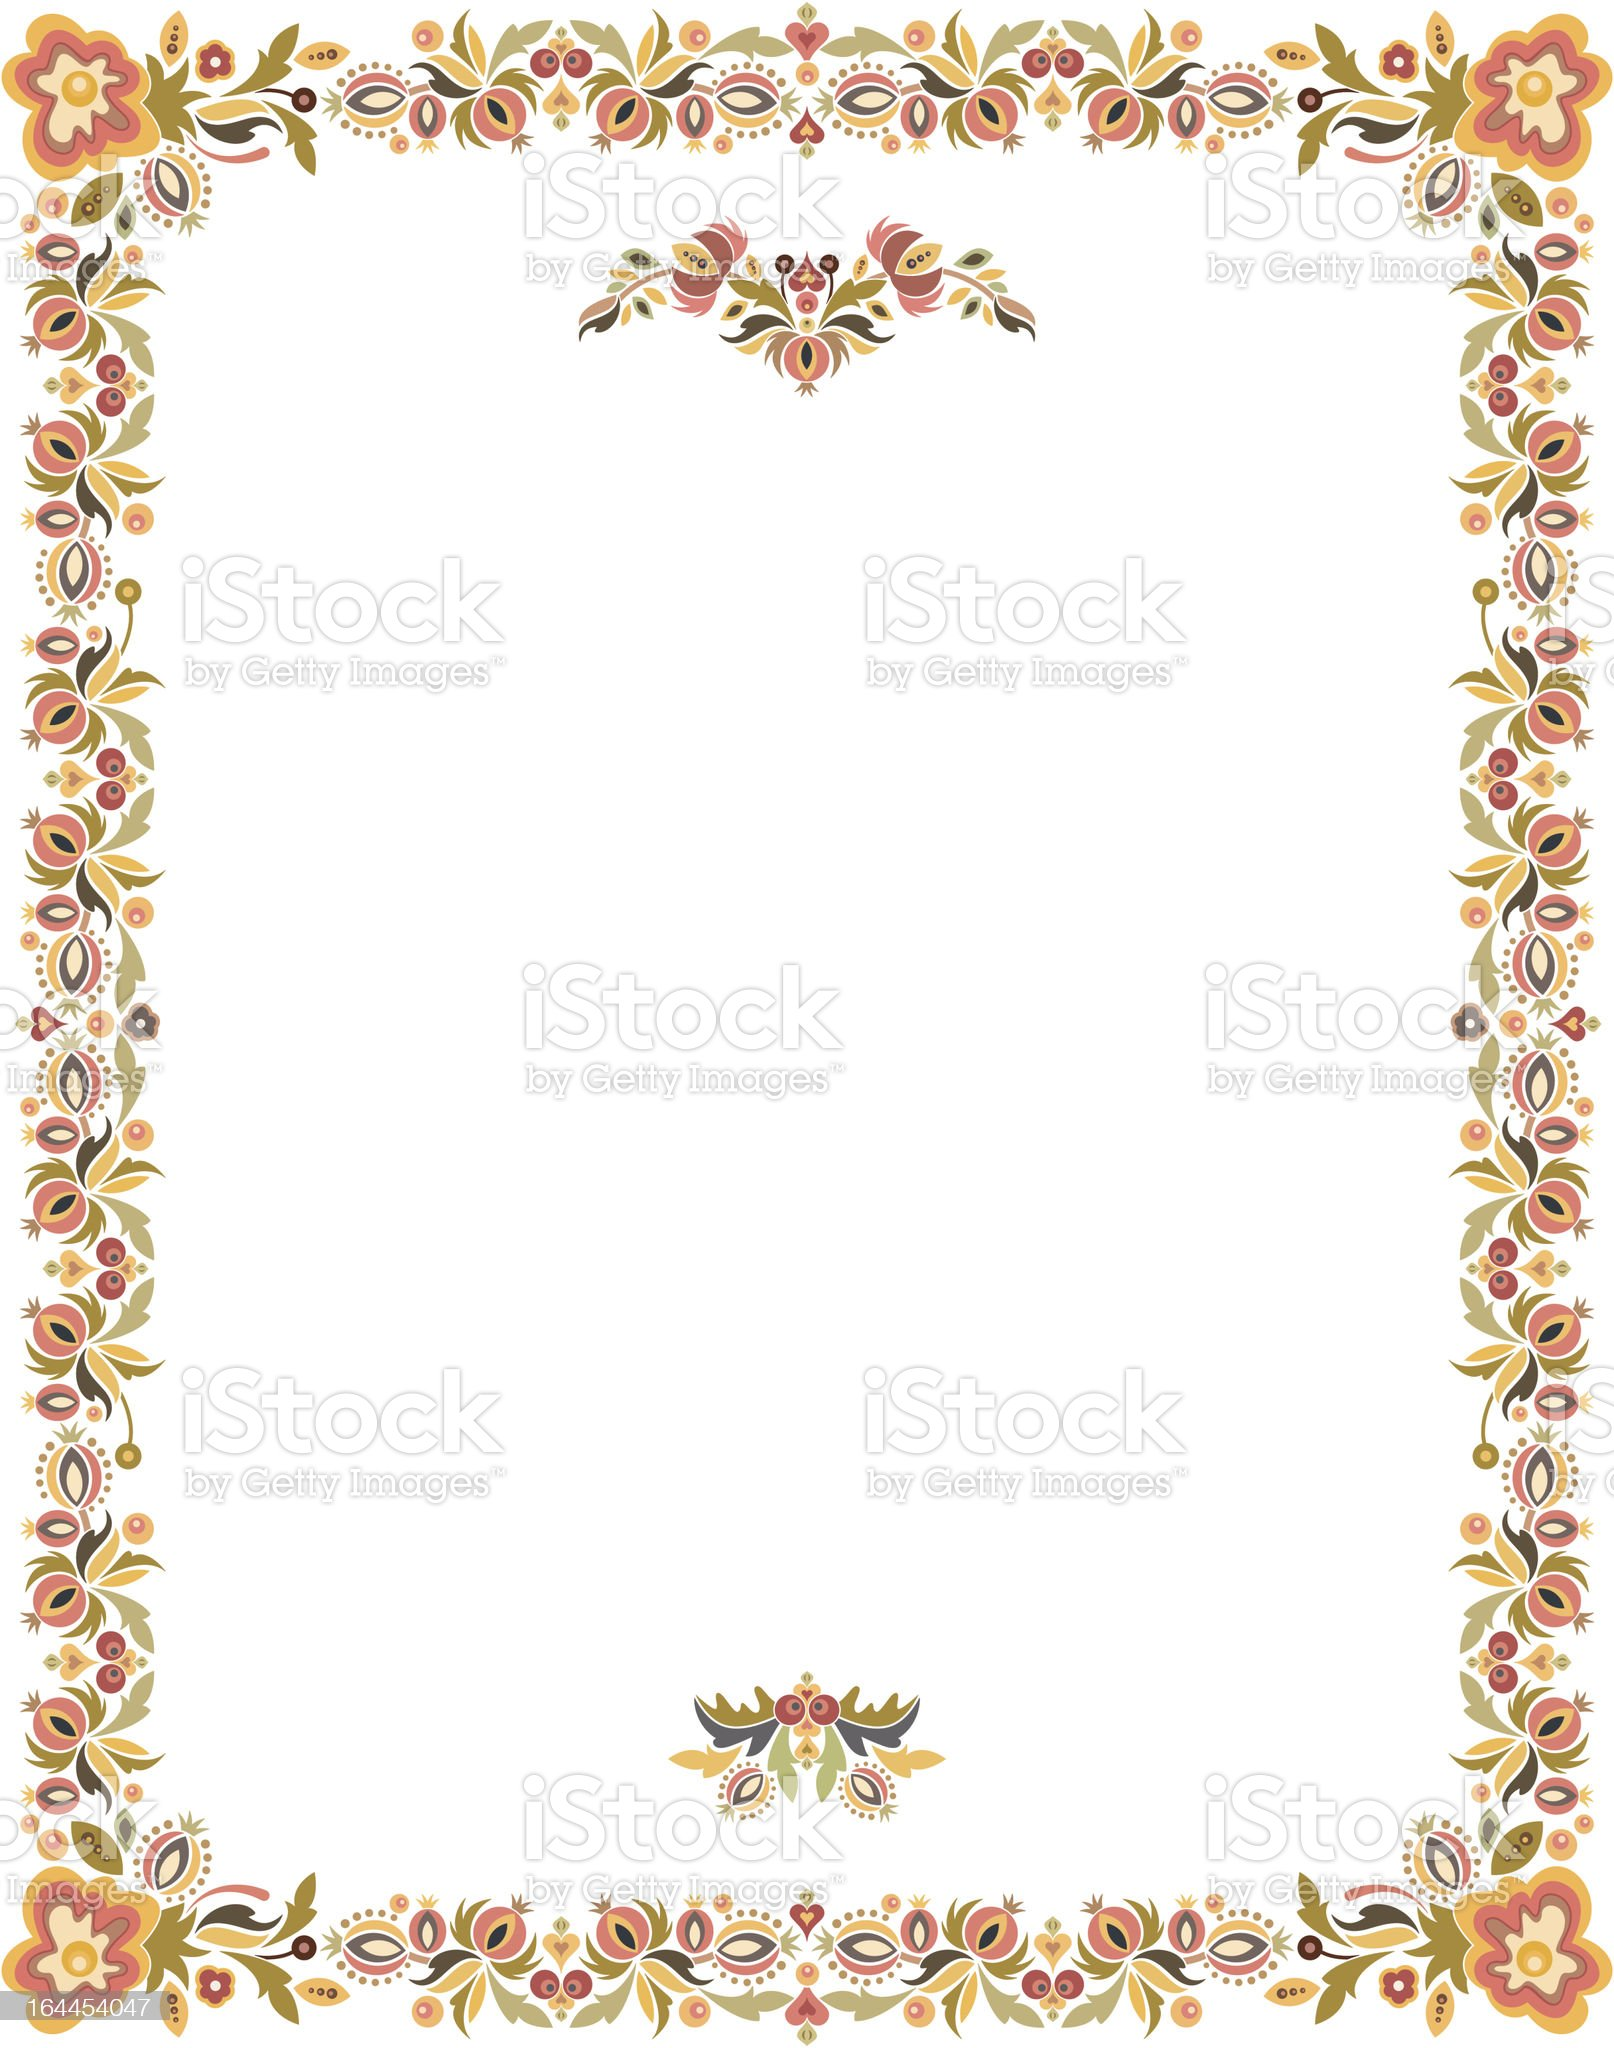 Vector Floral Frame royalty-free stock vector art